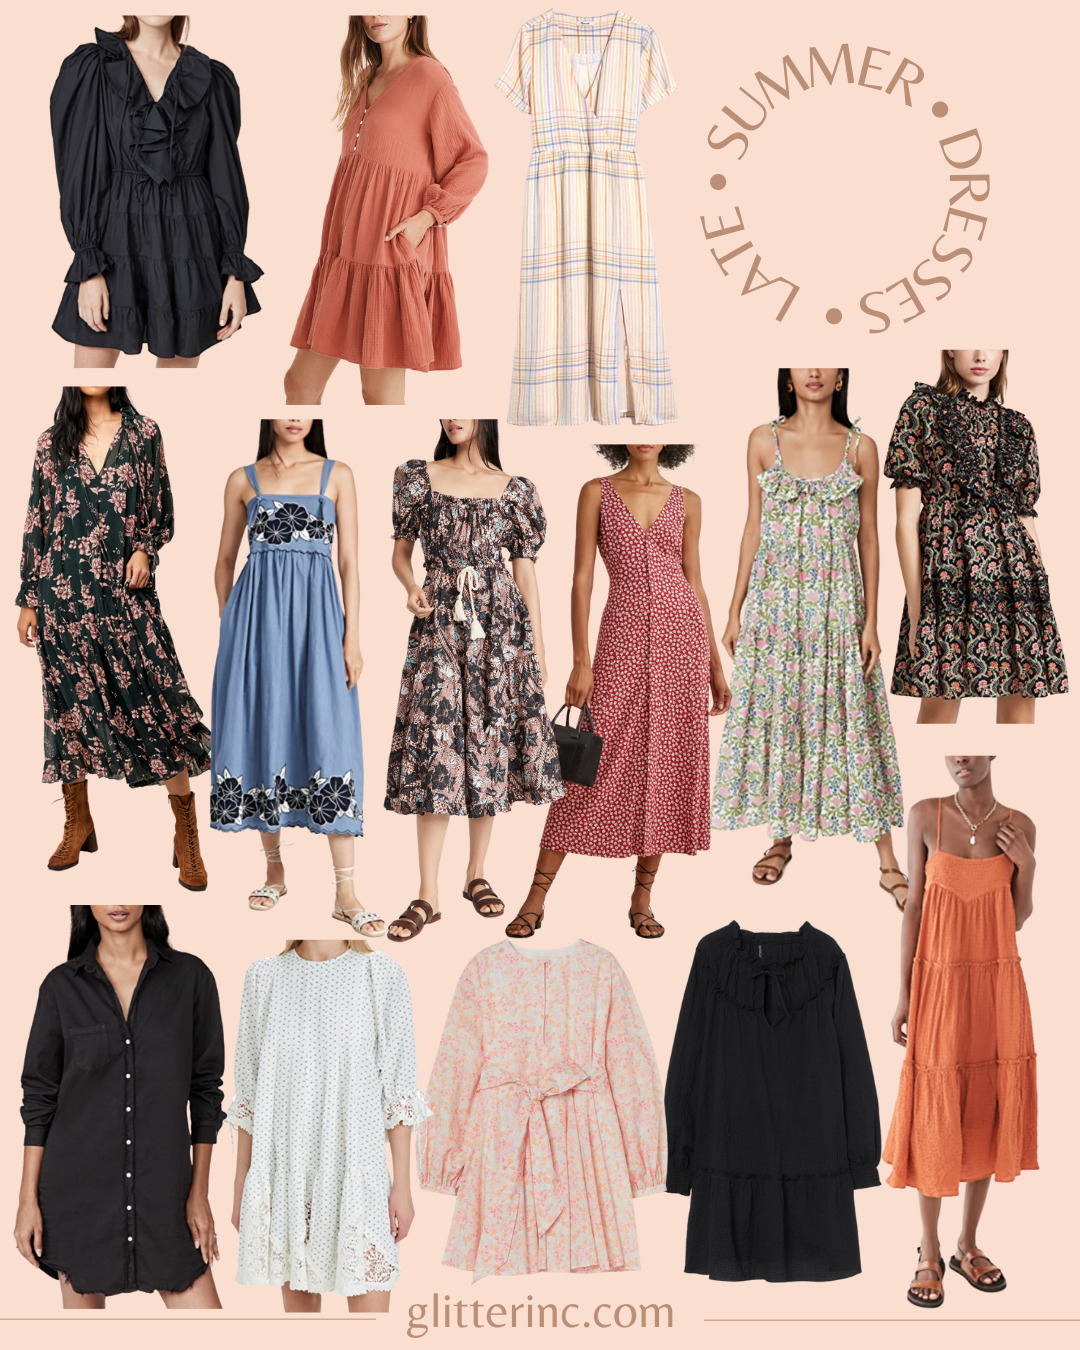 collage of 14 Late Summer Dresses - End of Summer Dresses -